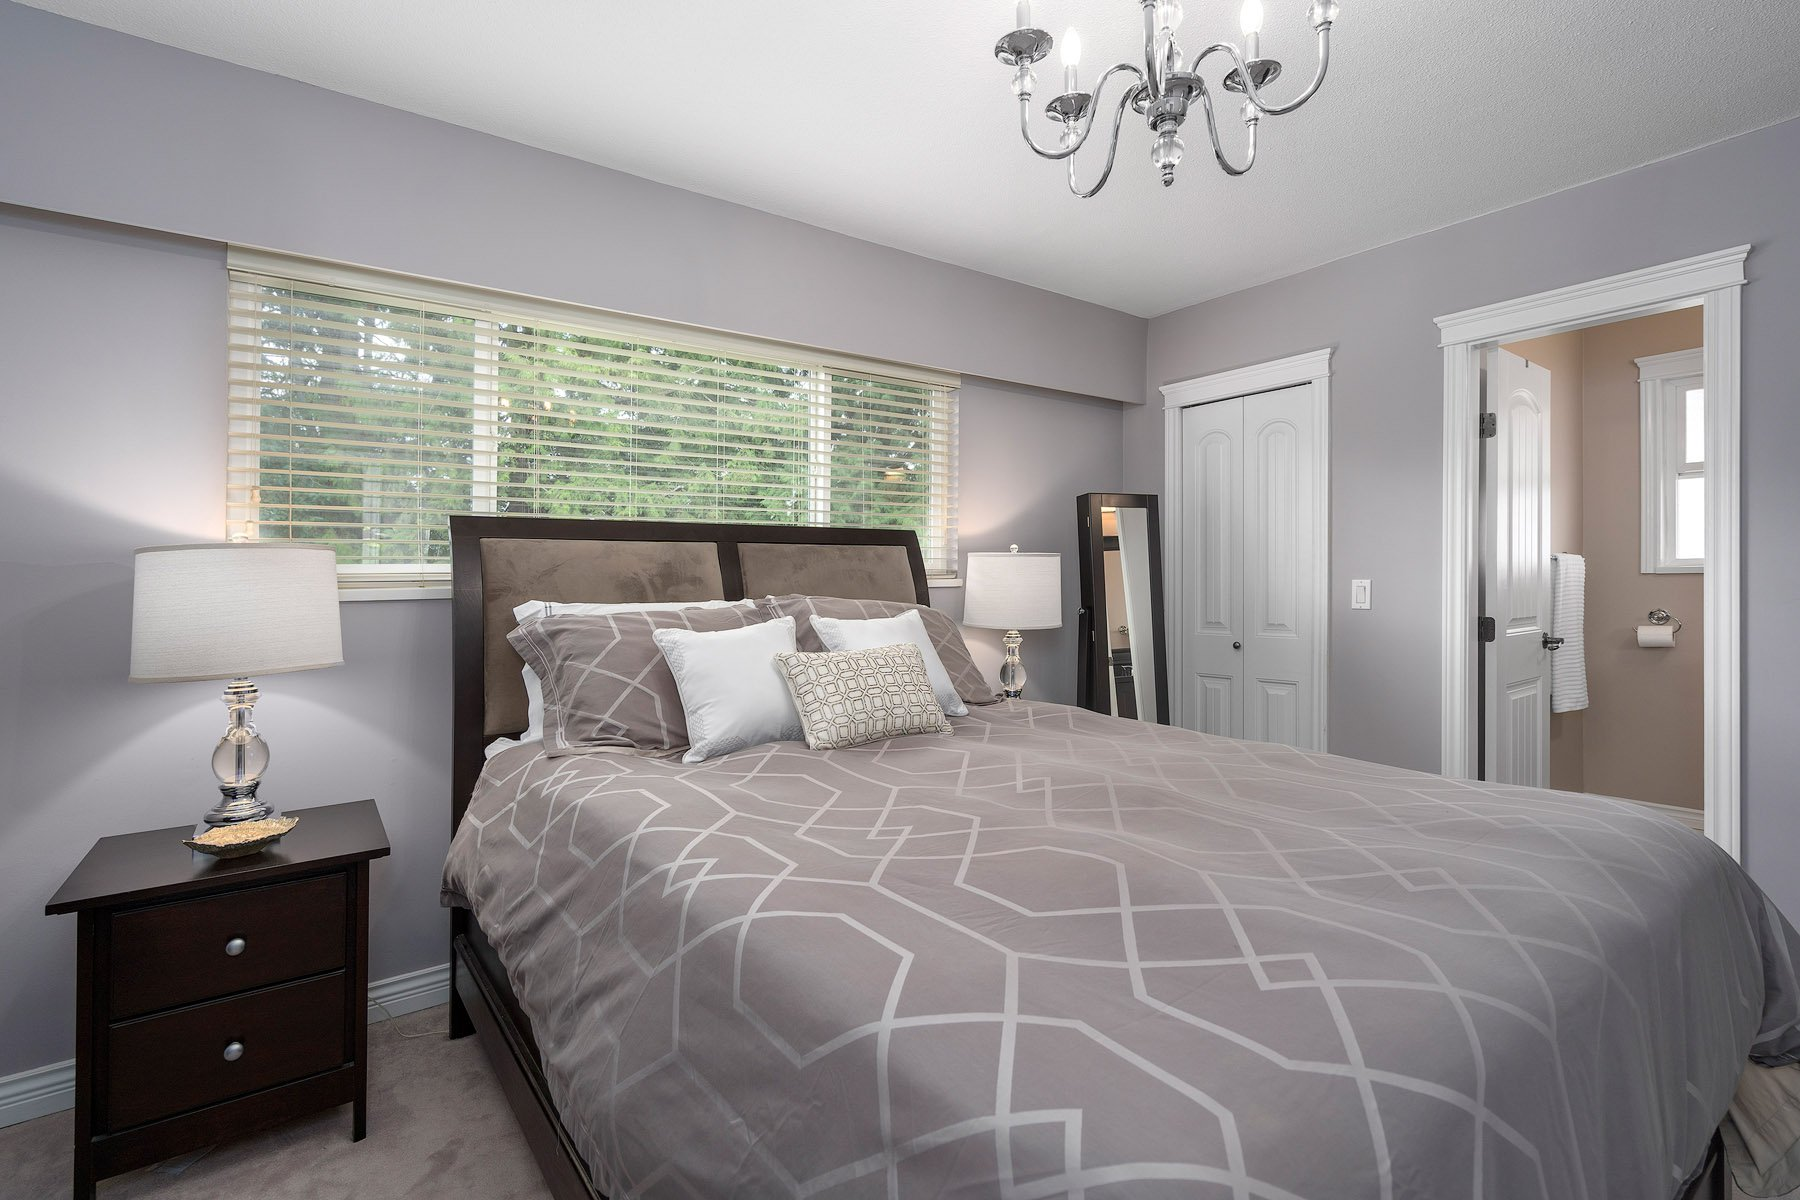 Photo 10: Photos: 423 MONTGOMERY Street in Coquitlam: Central Coquitlam House for sale : MLS®# R2380693